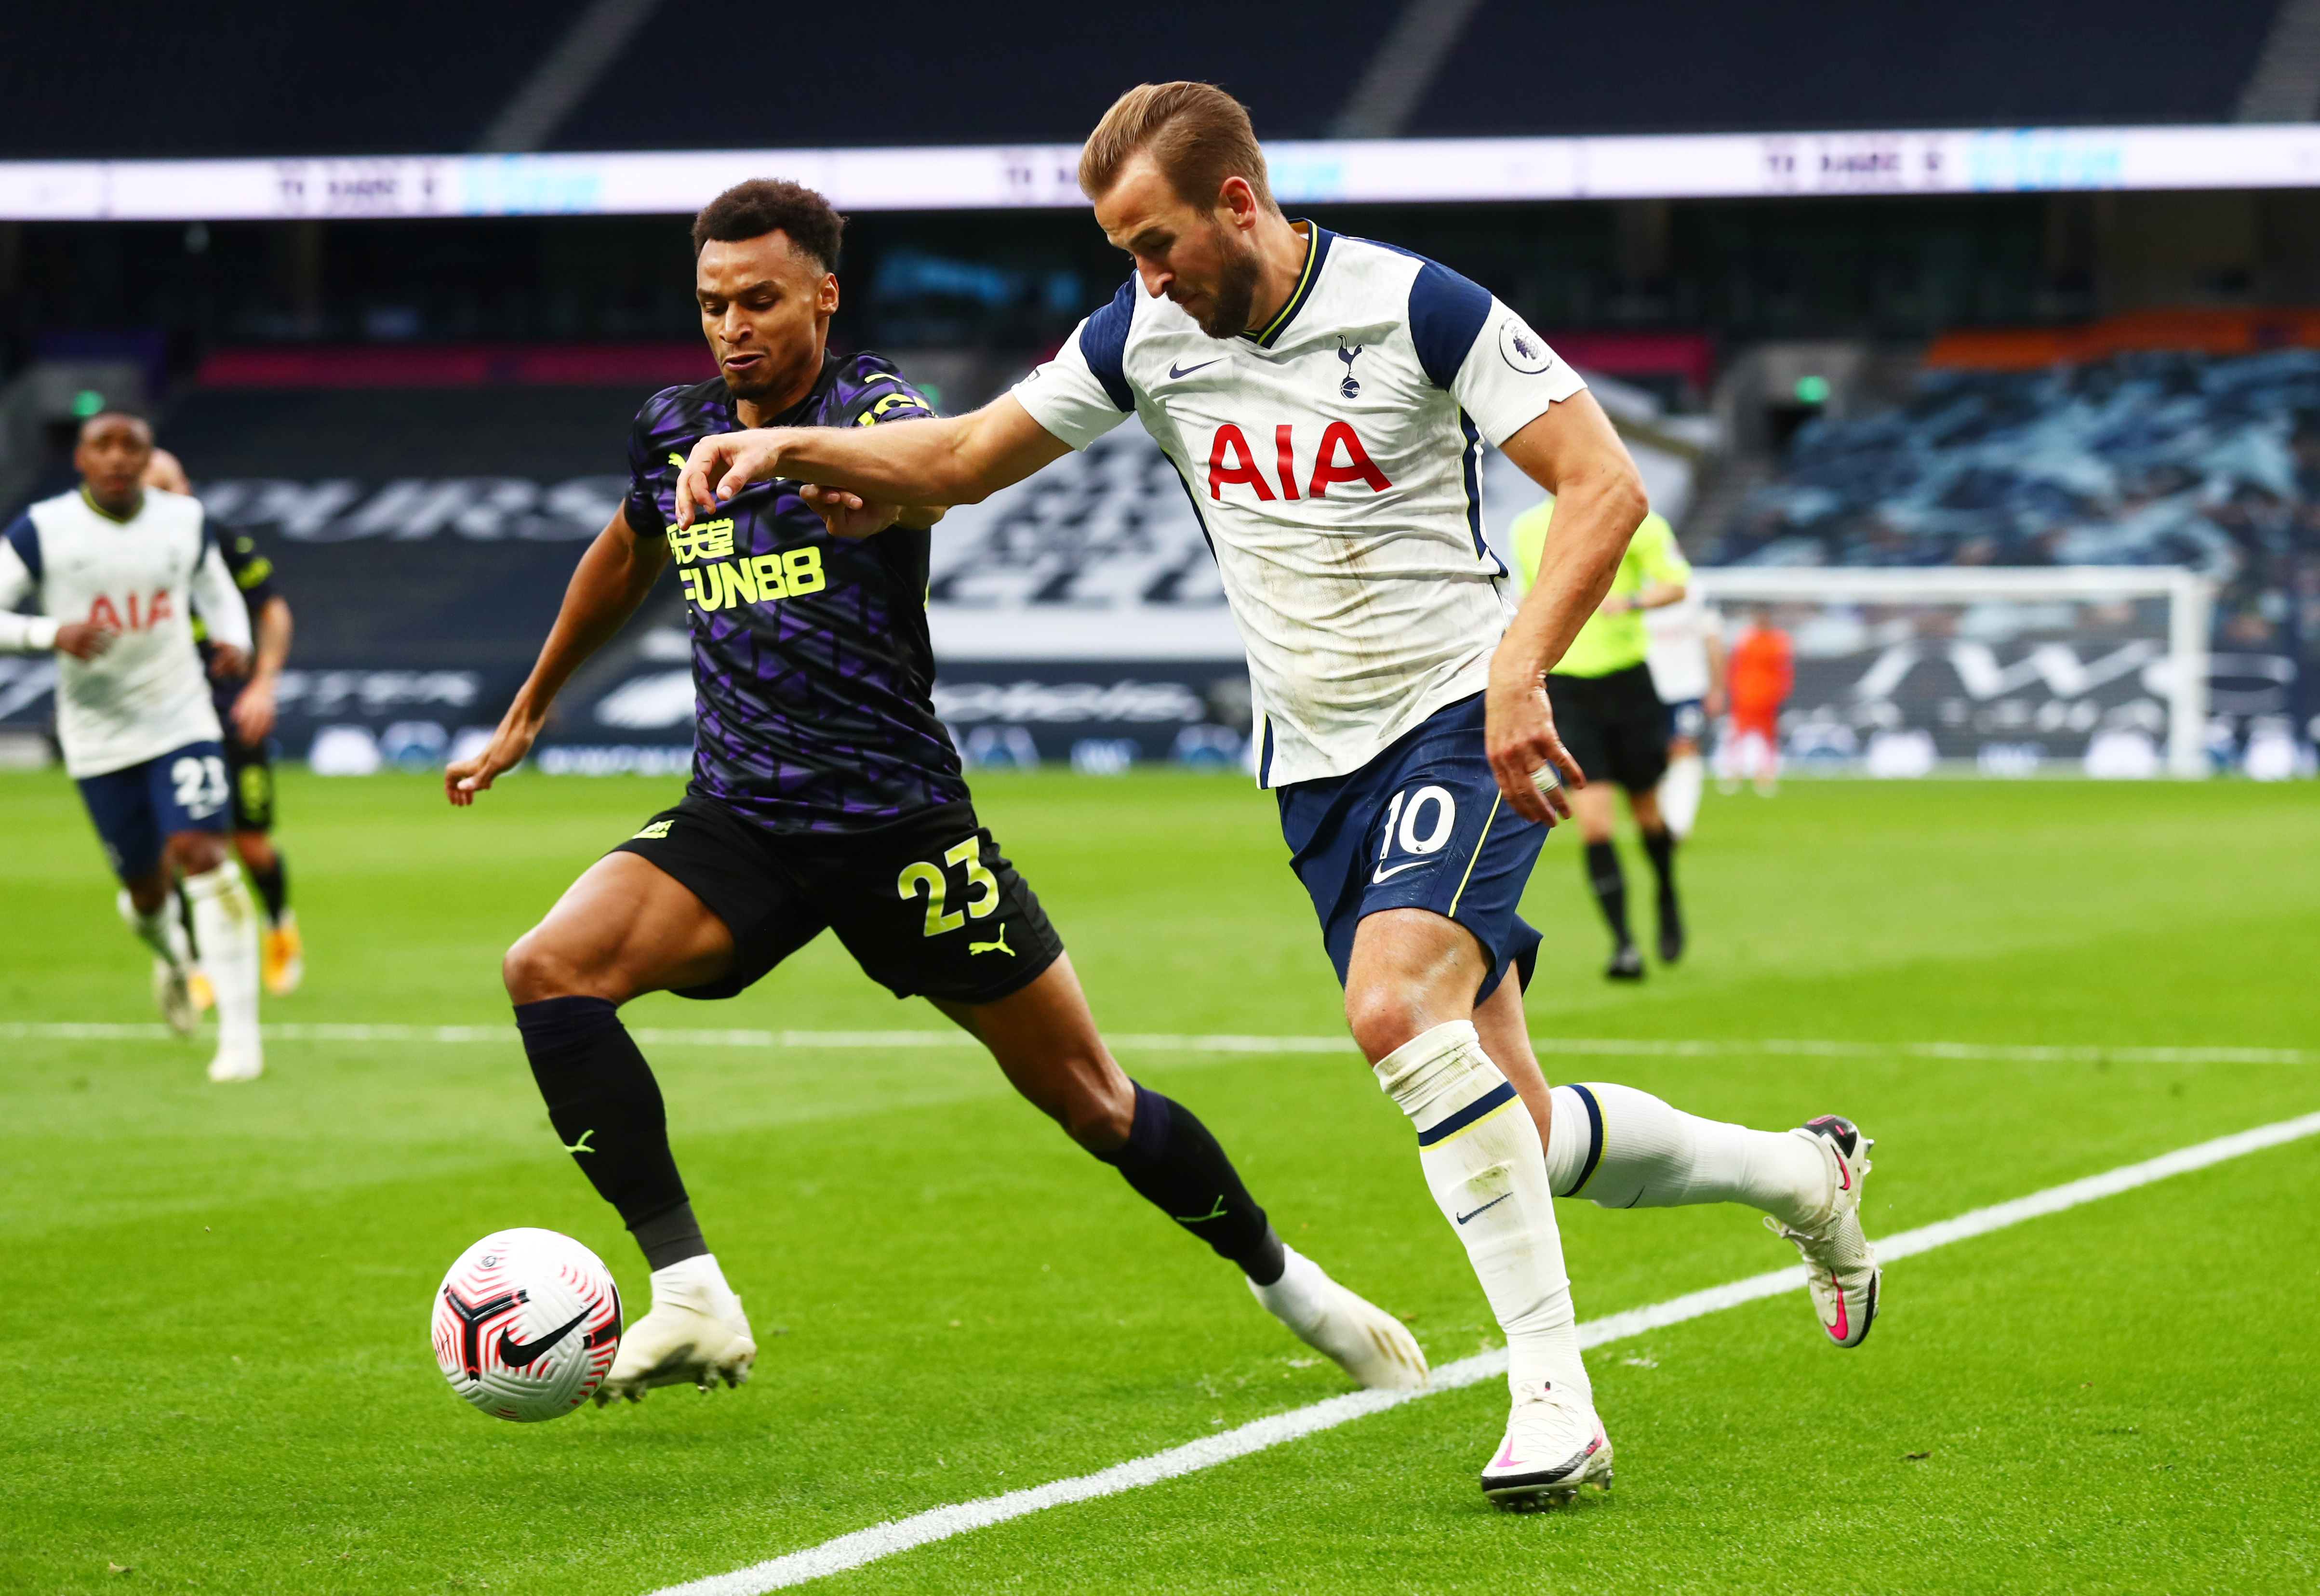 Tottenham Hotspur's Harry Kane in action with Newcastle United's Jacob Murphy. Photo: Reuters